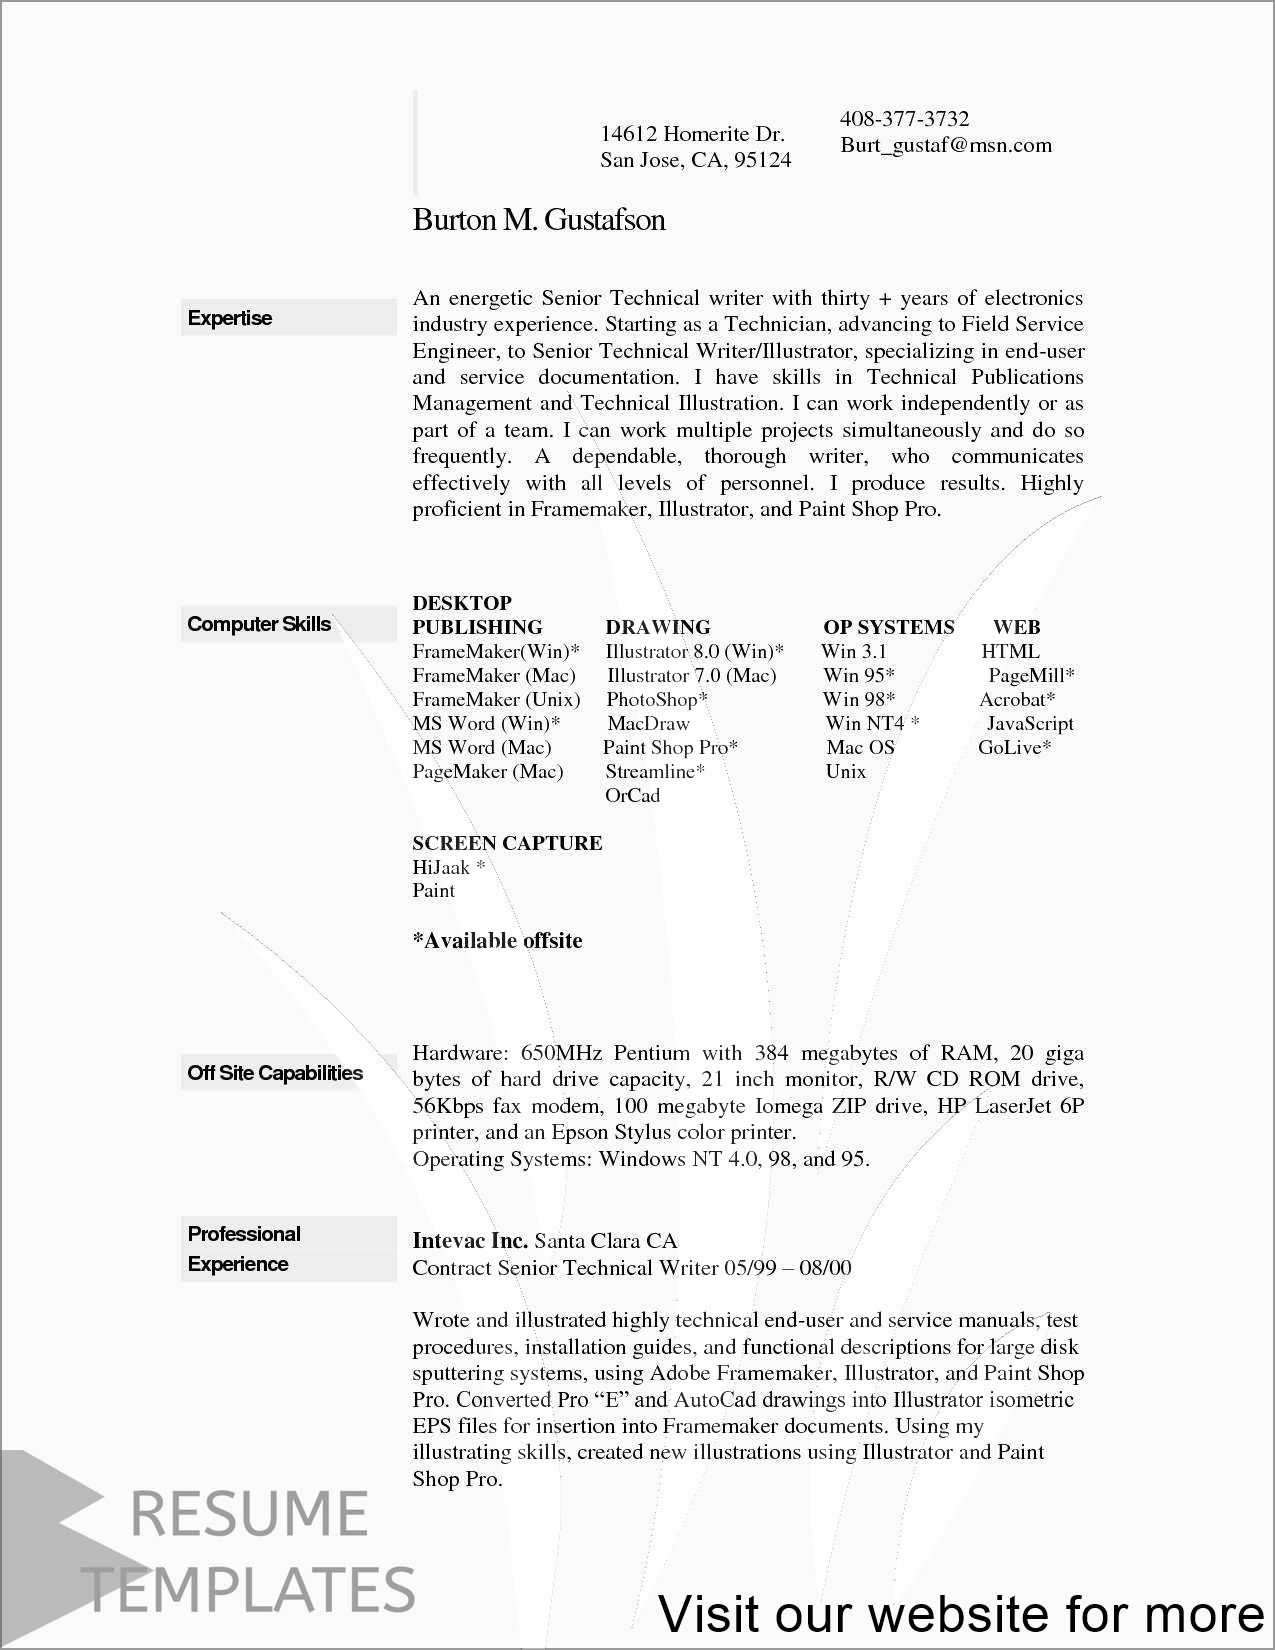 creative resume template free in 2020 Resume template